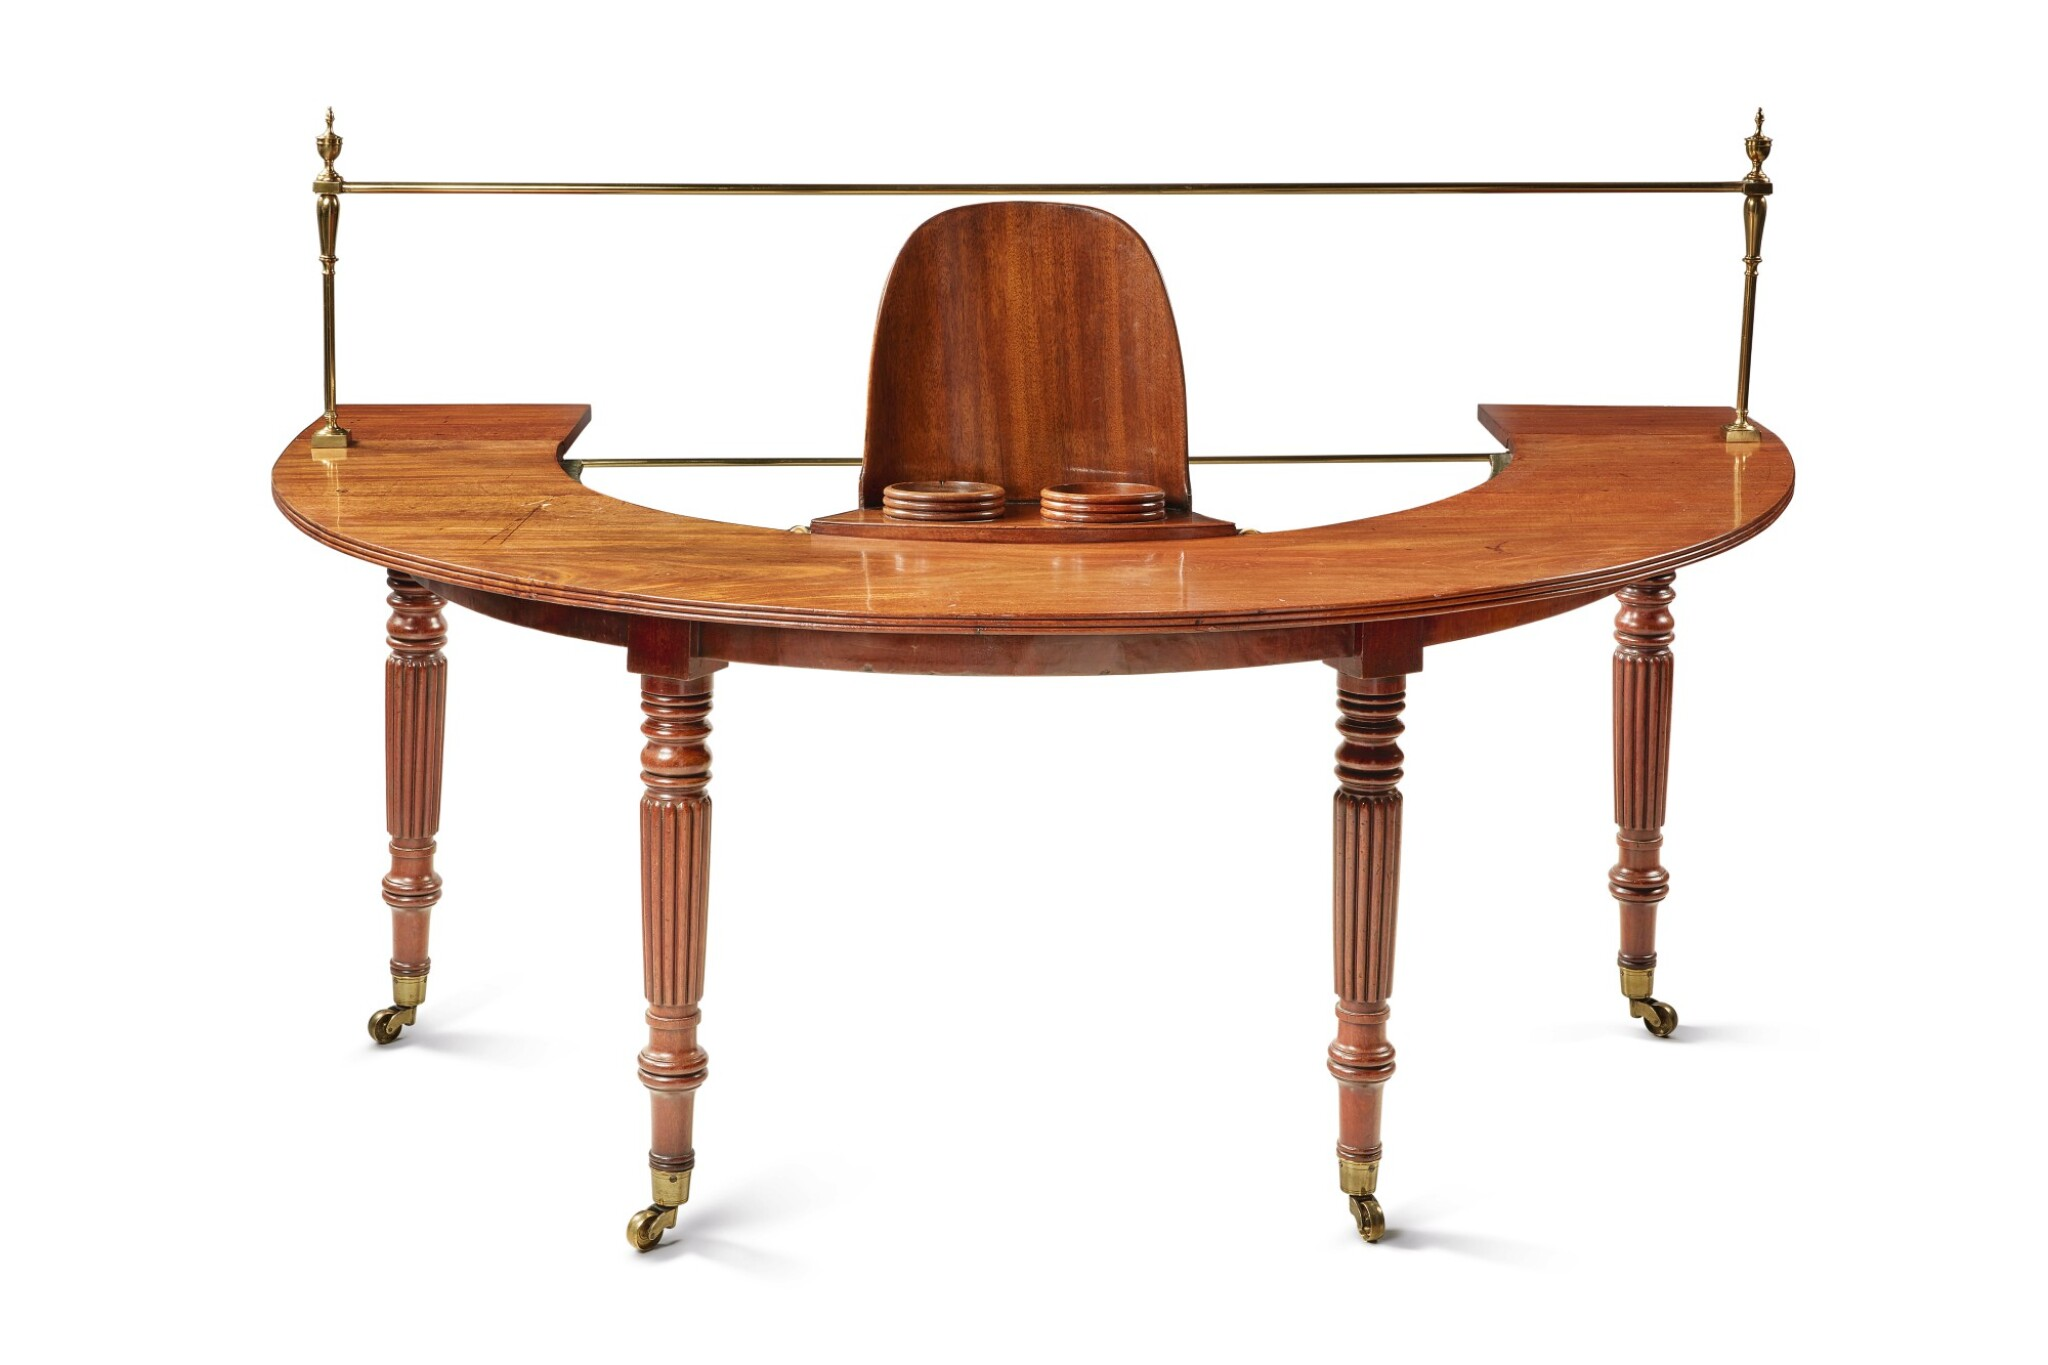 View full screen - View 1 of Lot 263. A REGENCY MAHOGANY HUNT TABLE IN THE MANNER OF GILLOWS, FIRST QUARTER 19TH CENTURY.